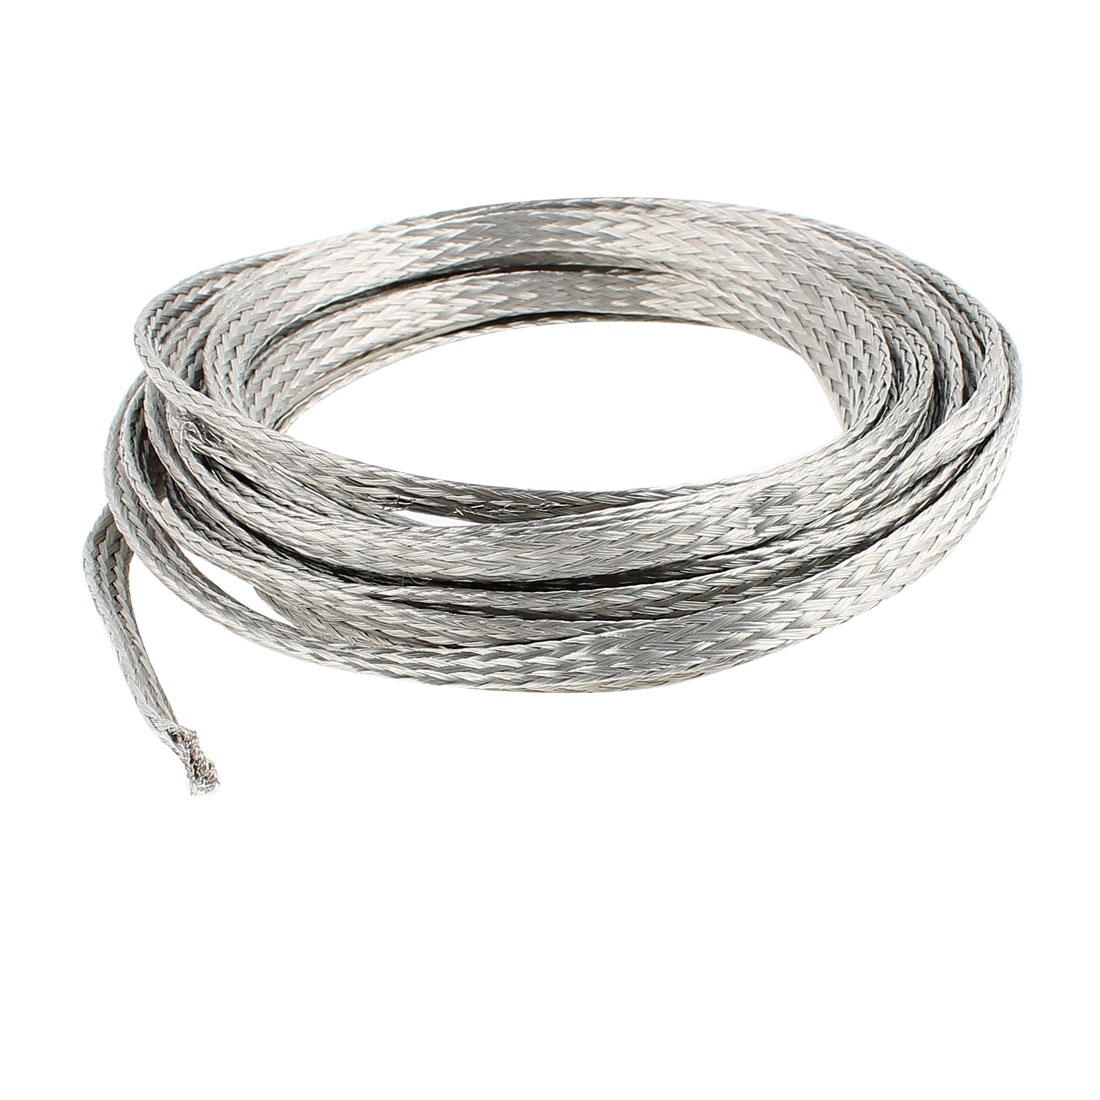 4 Square Millimeter Thickness 5M Length Flat Bare Tined Braided Copper Wire